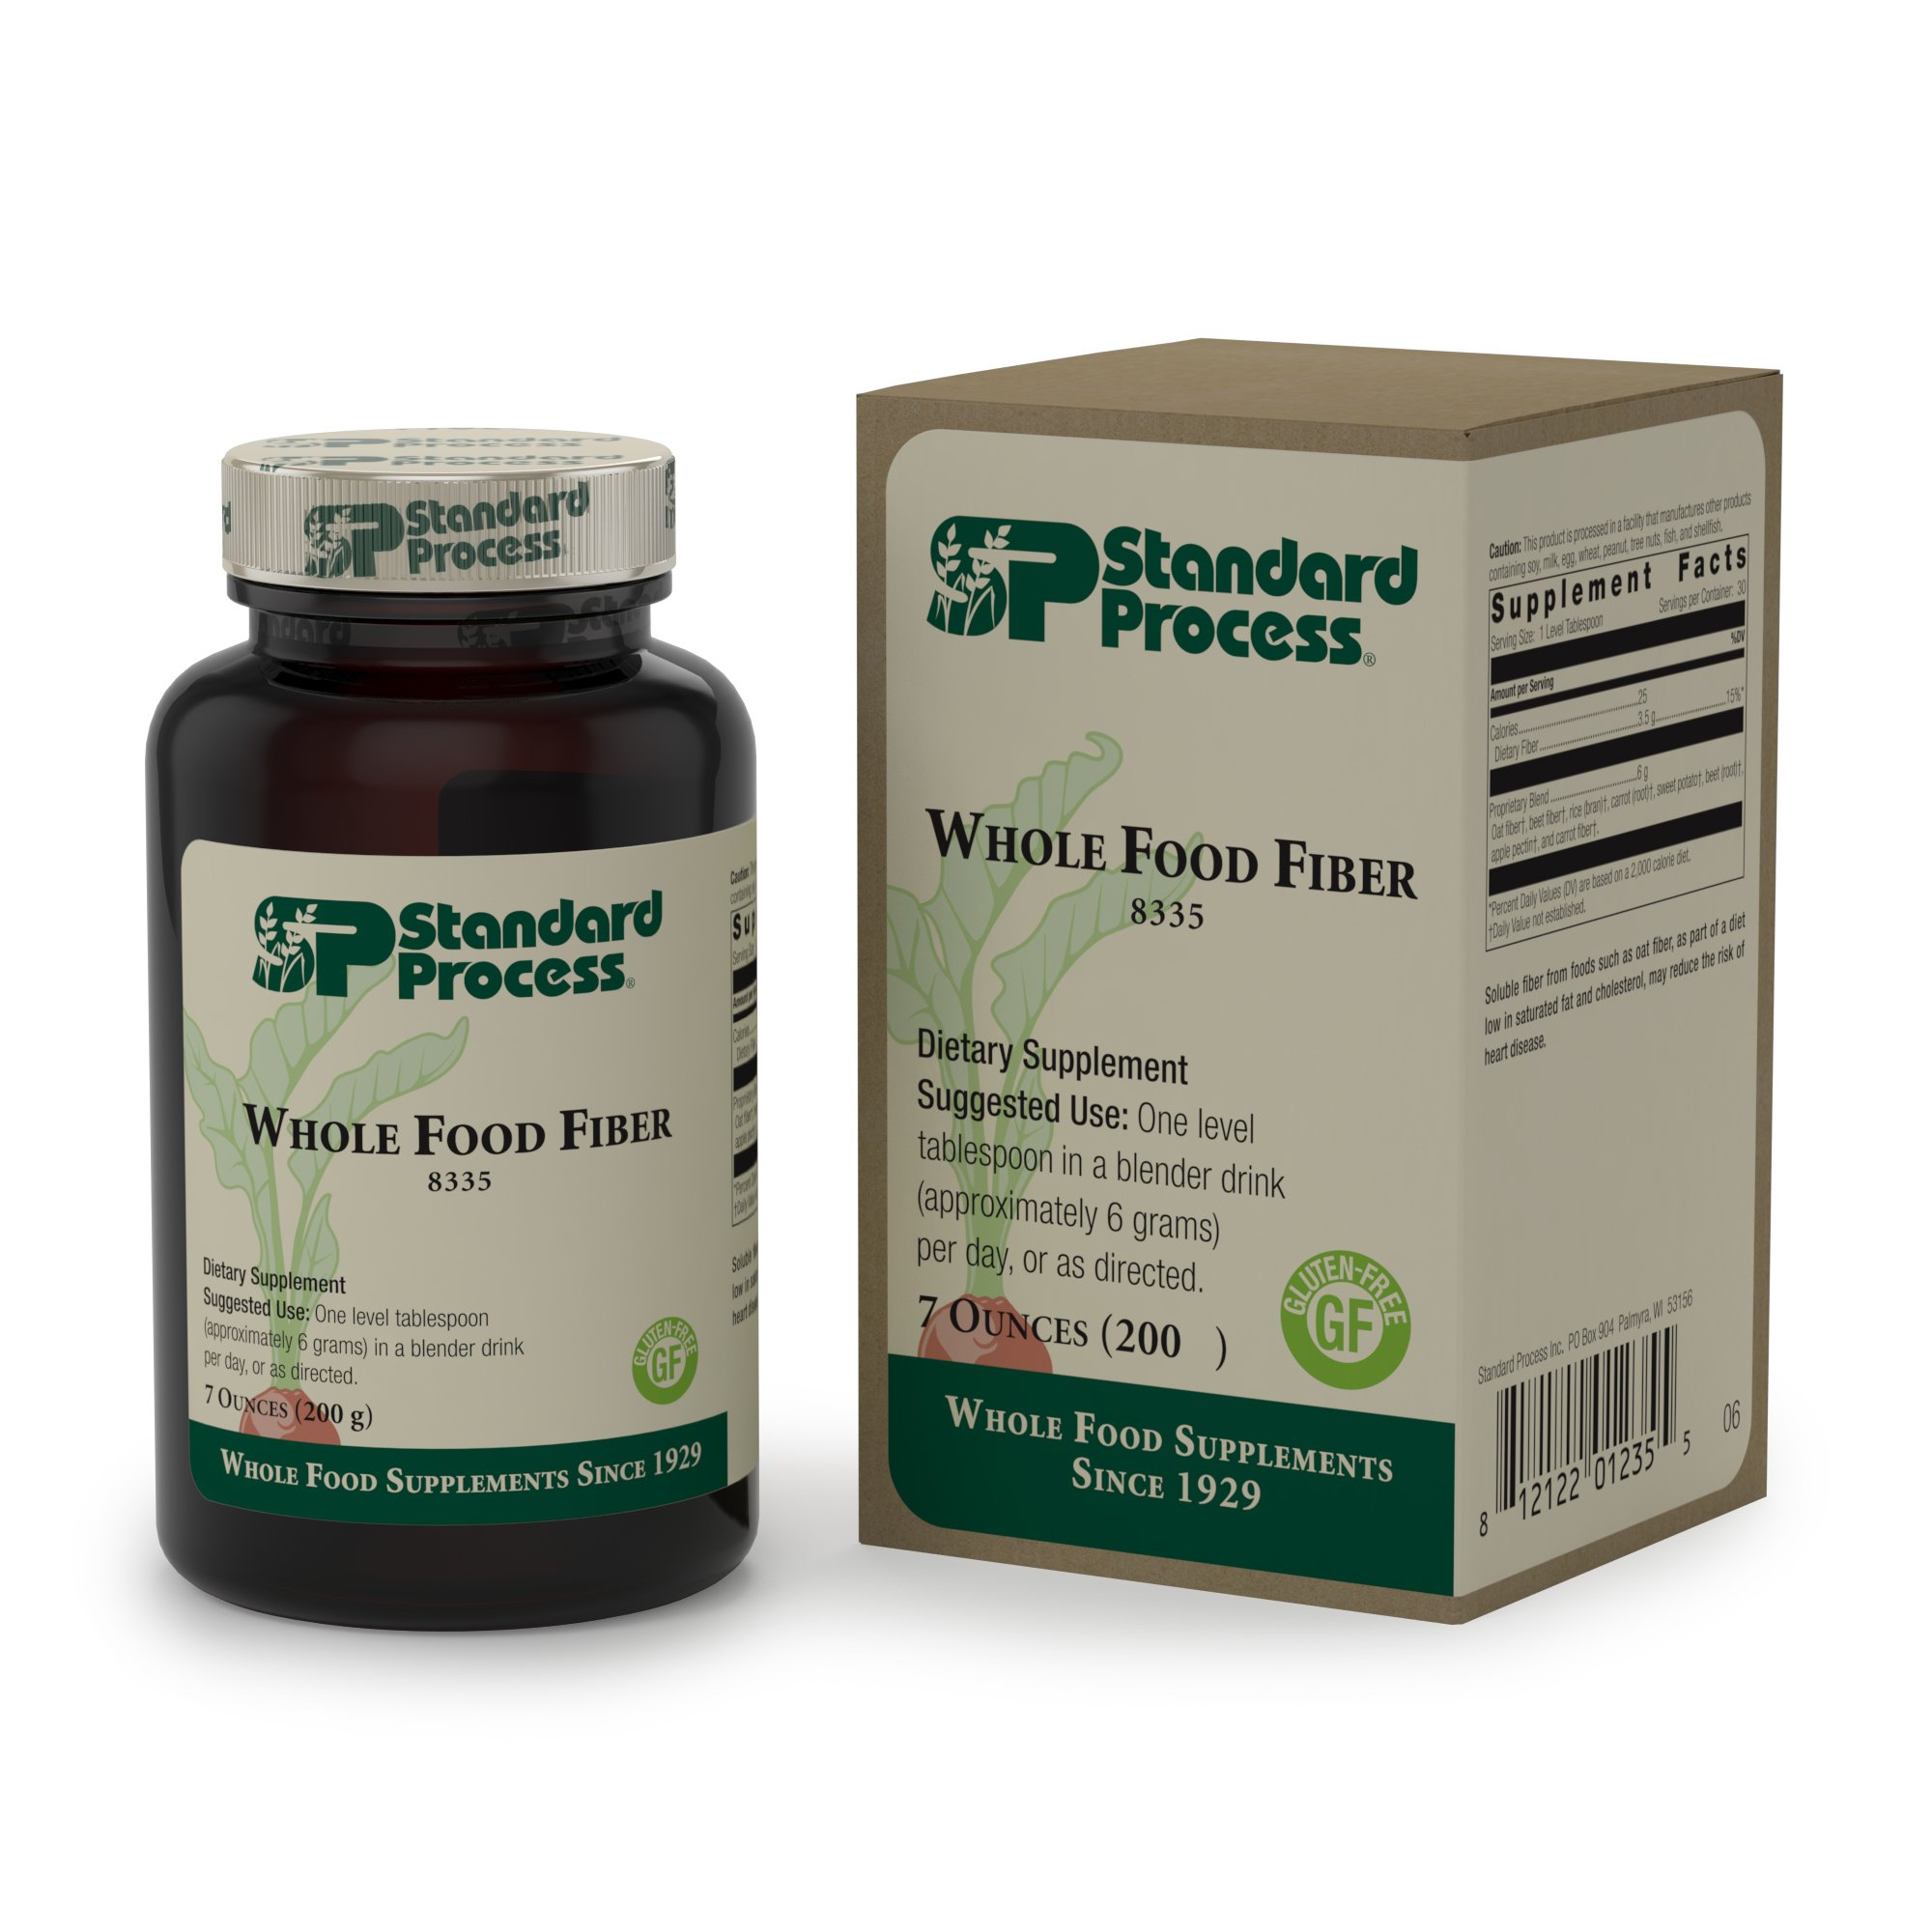 Standard Process - Whole Food Fiber - Nutrient-Rich Fiber Supplement, Supports Health Bowel Function and Intestinal Health, Gluten Free and Vegetarian - 7 oz. (200 g)